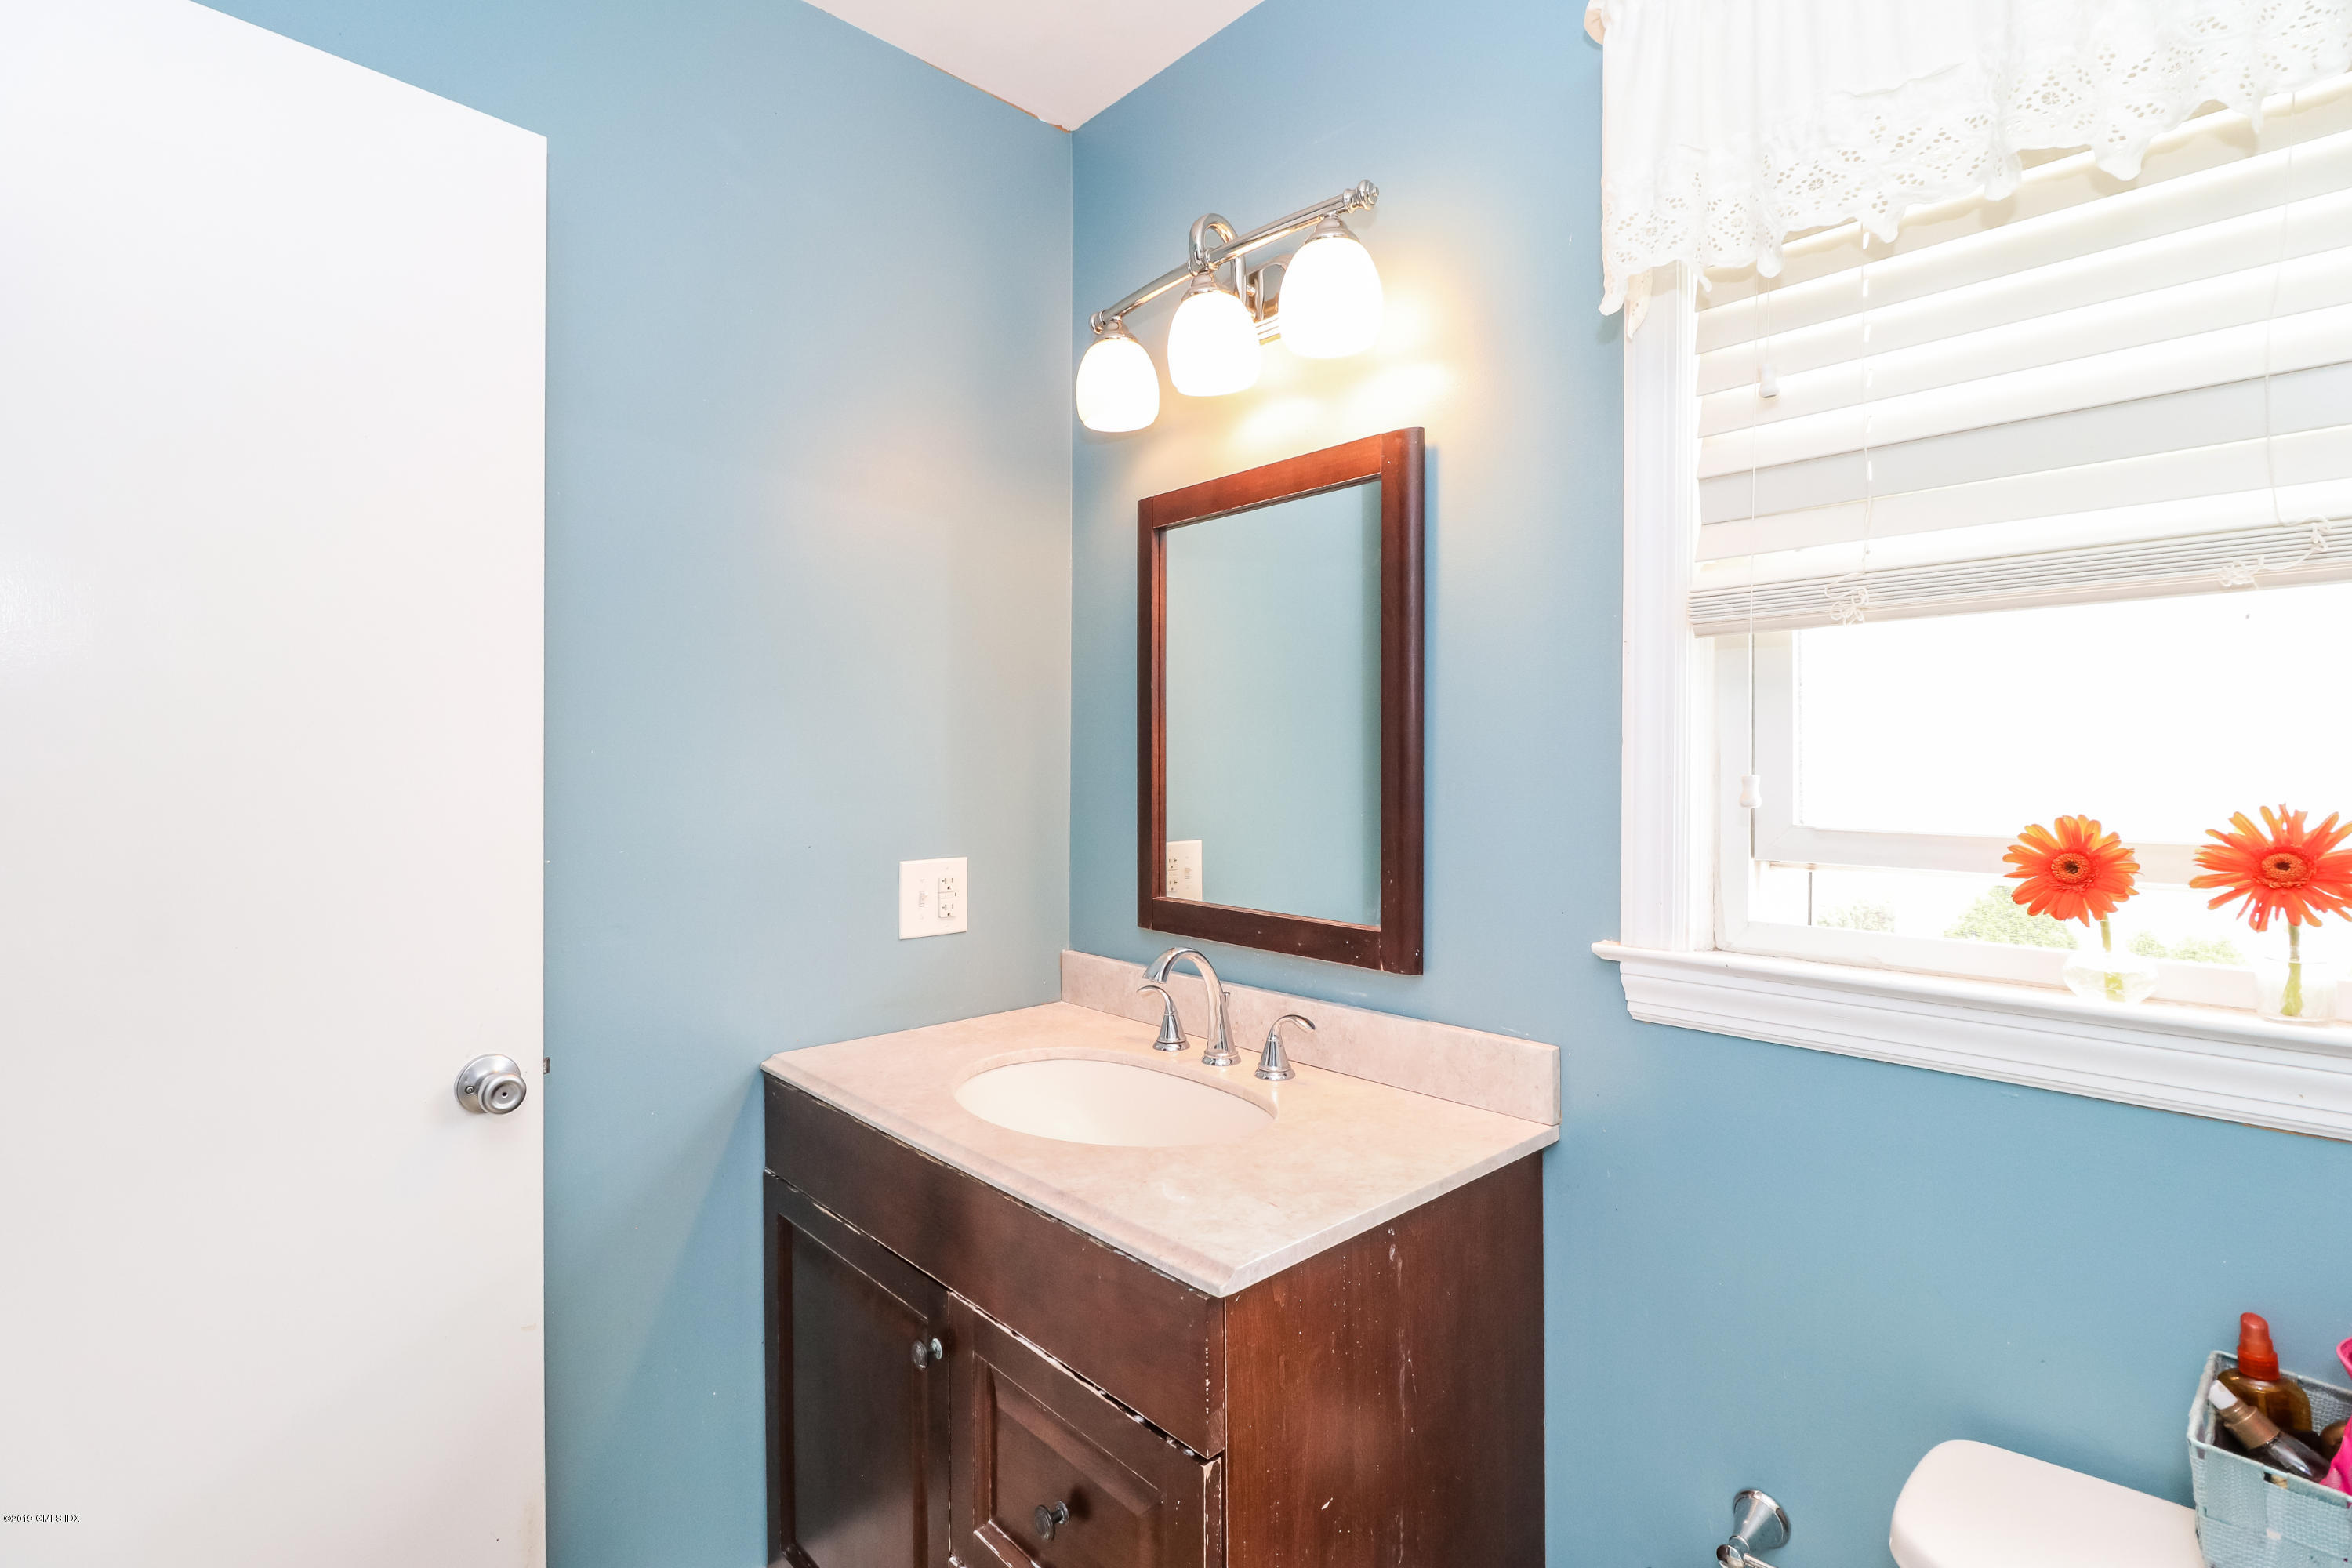 14 Harold Avenue,Greenwich,Connecticut 06830,2 Bedrooms Bedrooms,1 BathroomBathrooms,Condominium,Harold,106611